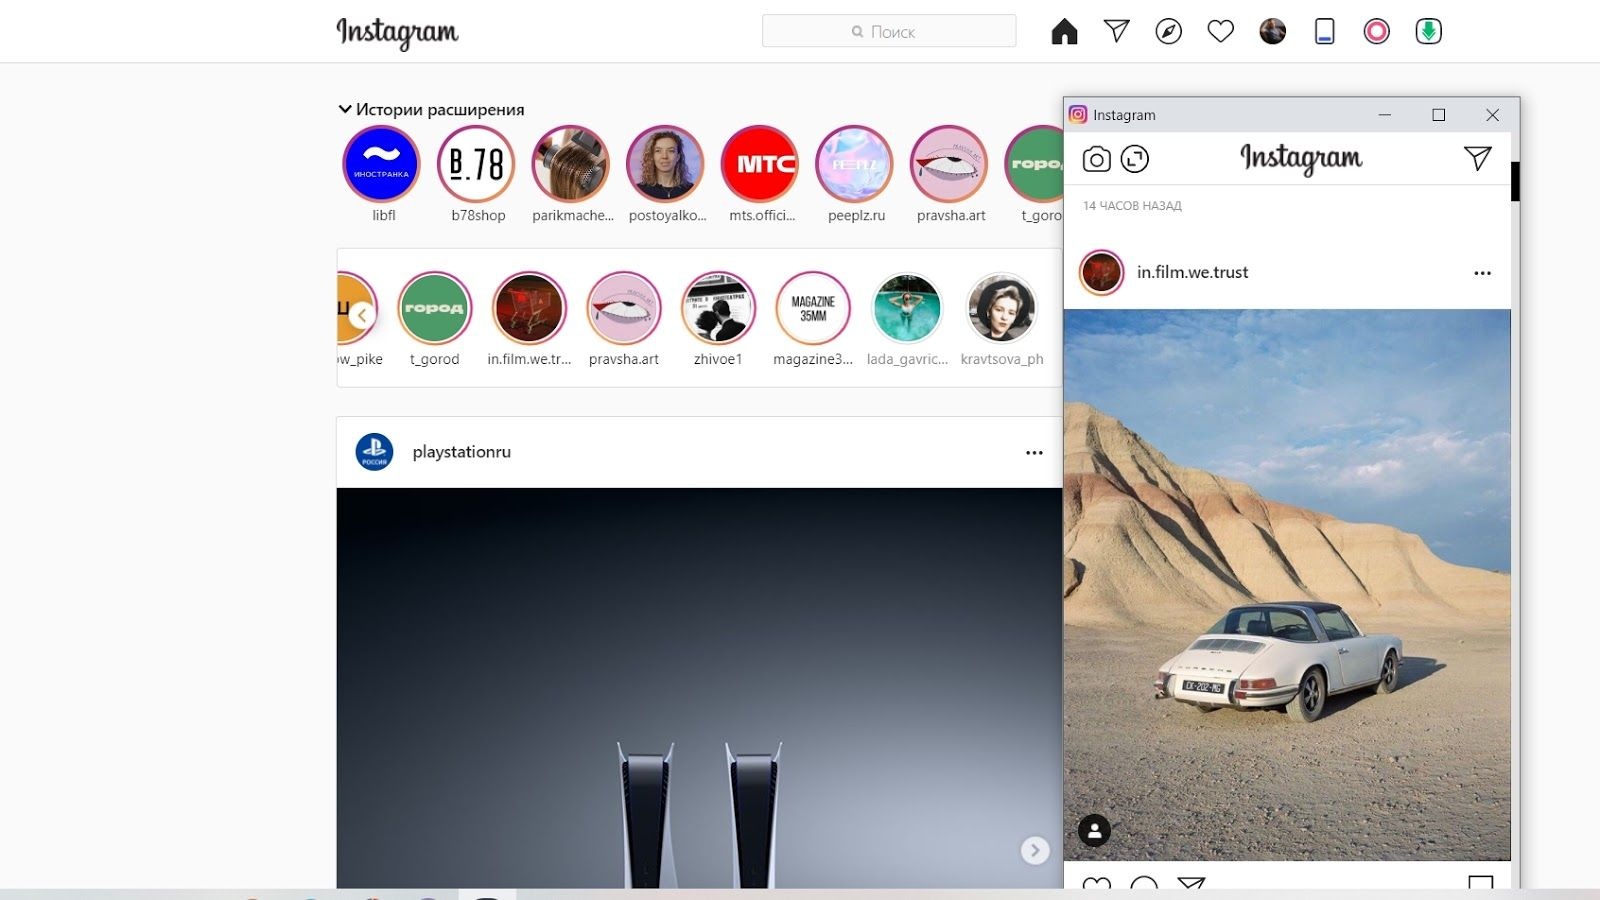 Through the Downloader for Instagram extension, you can create a new browser window as a mobile application